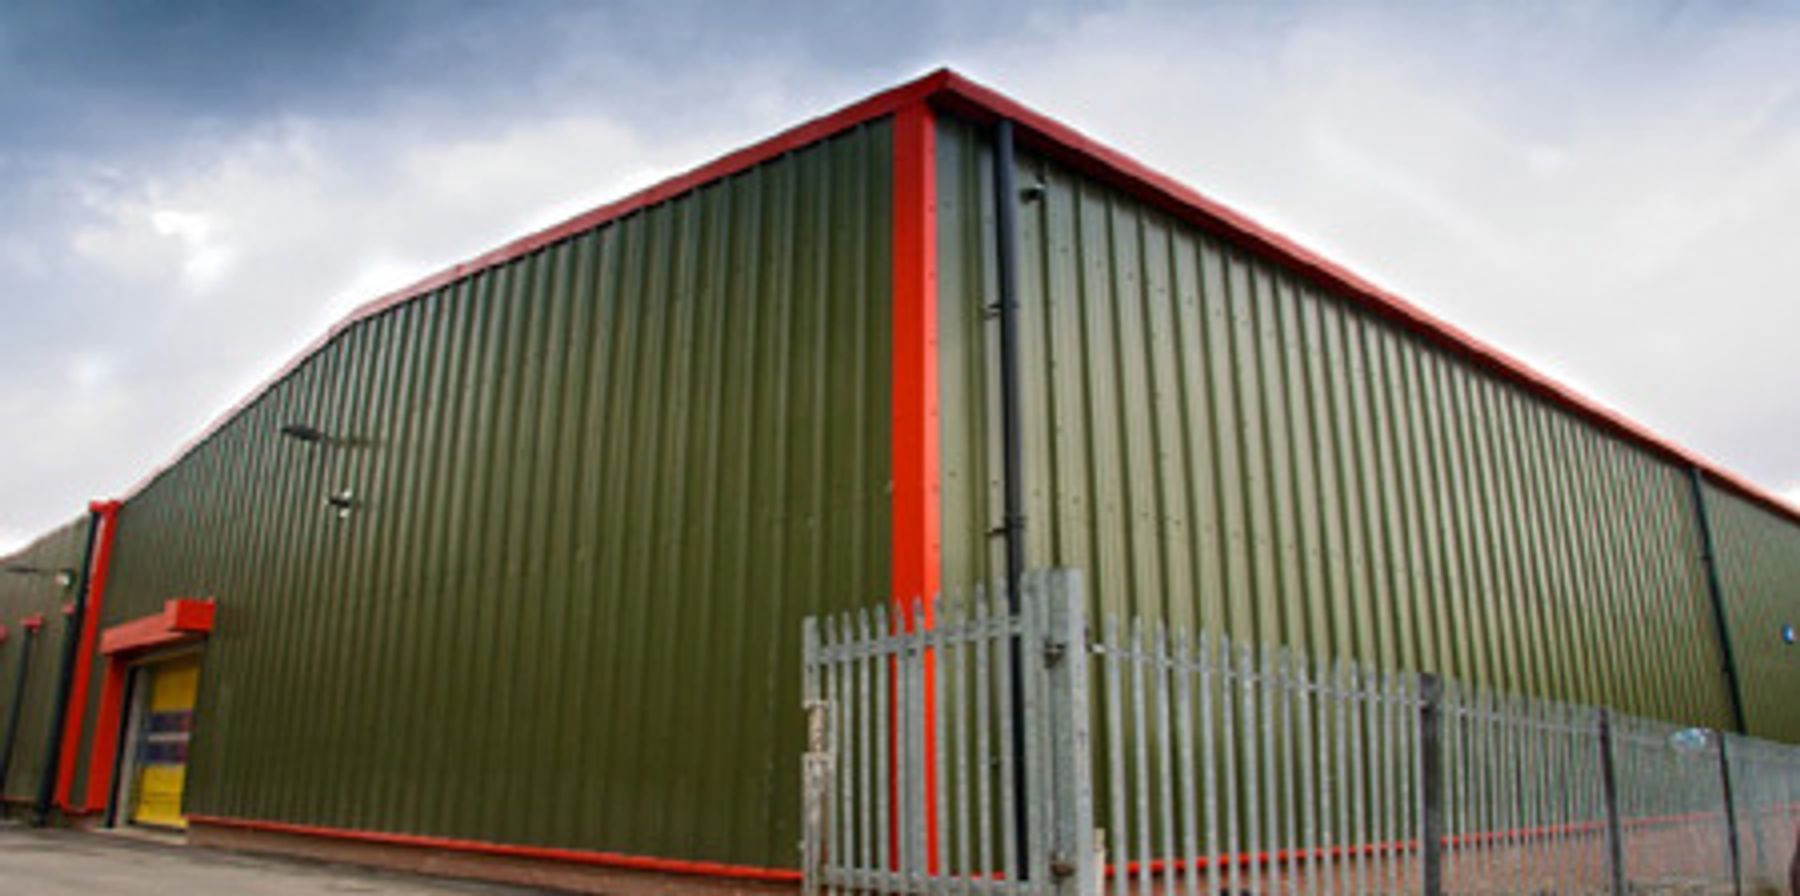 Monclad Roofing Companies. South Wales and the west